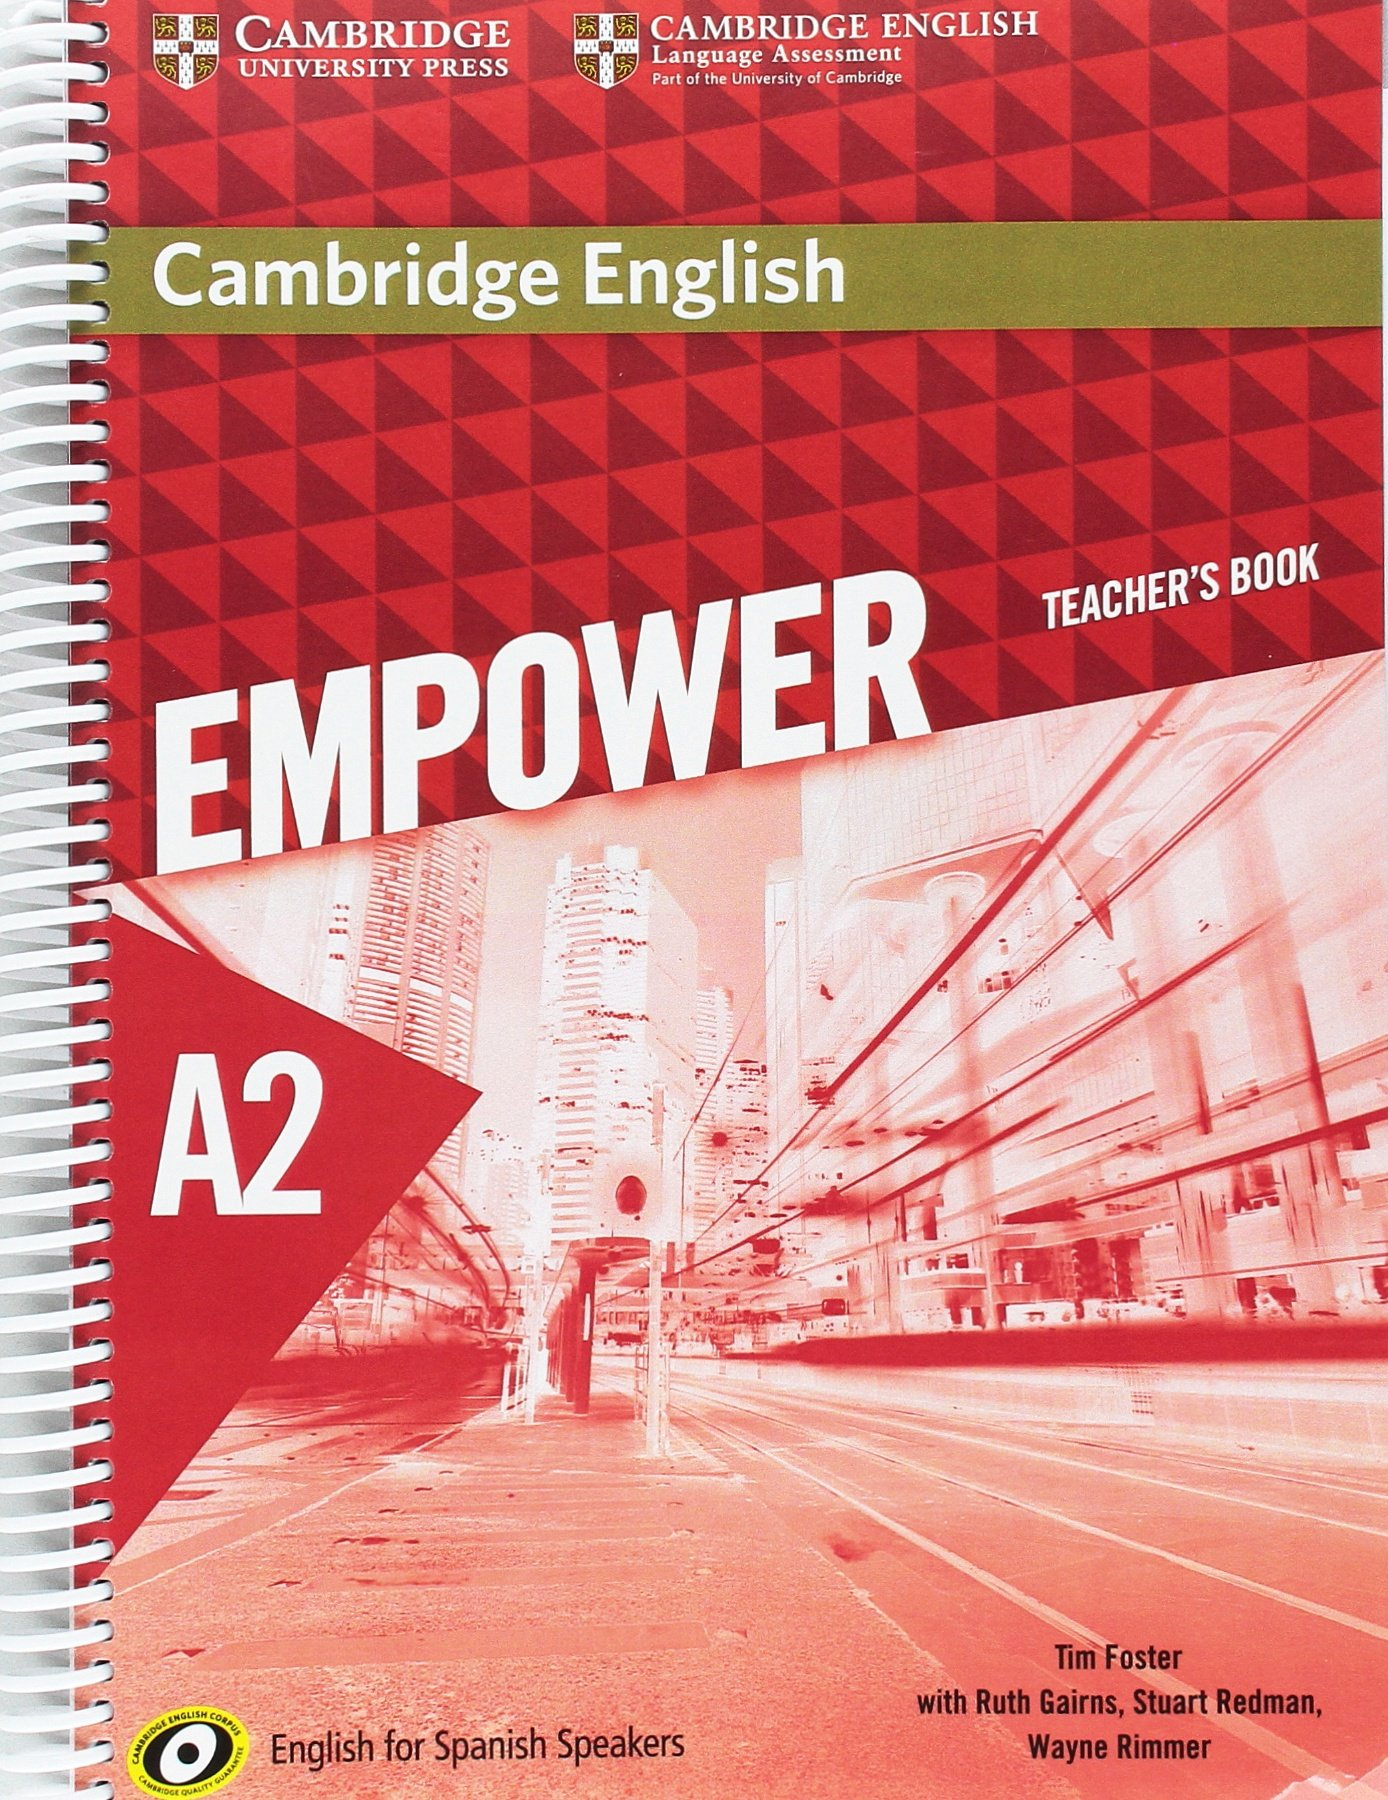 Cambridge English Empower for Spanish Speakers A2 Teacher's